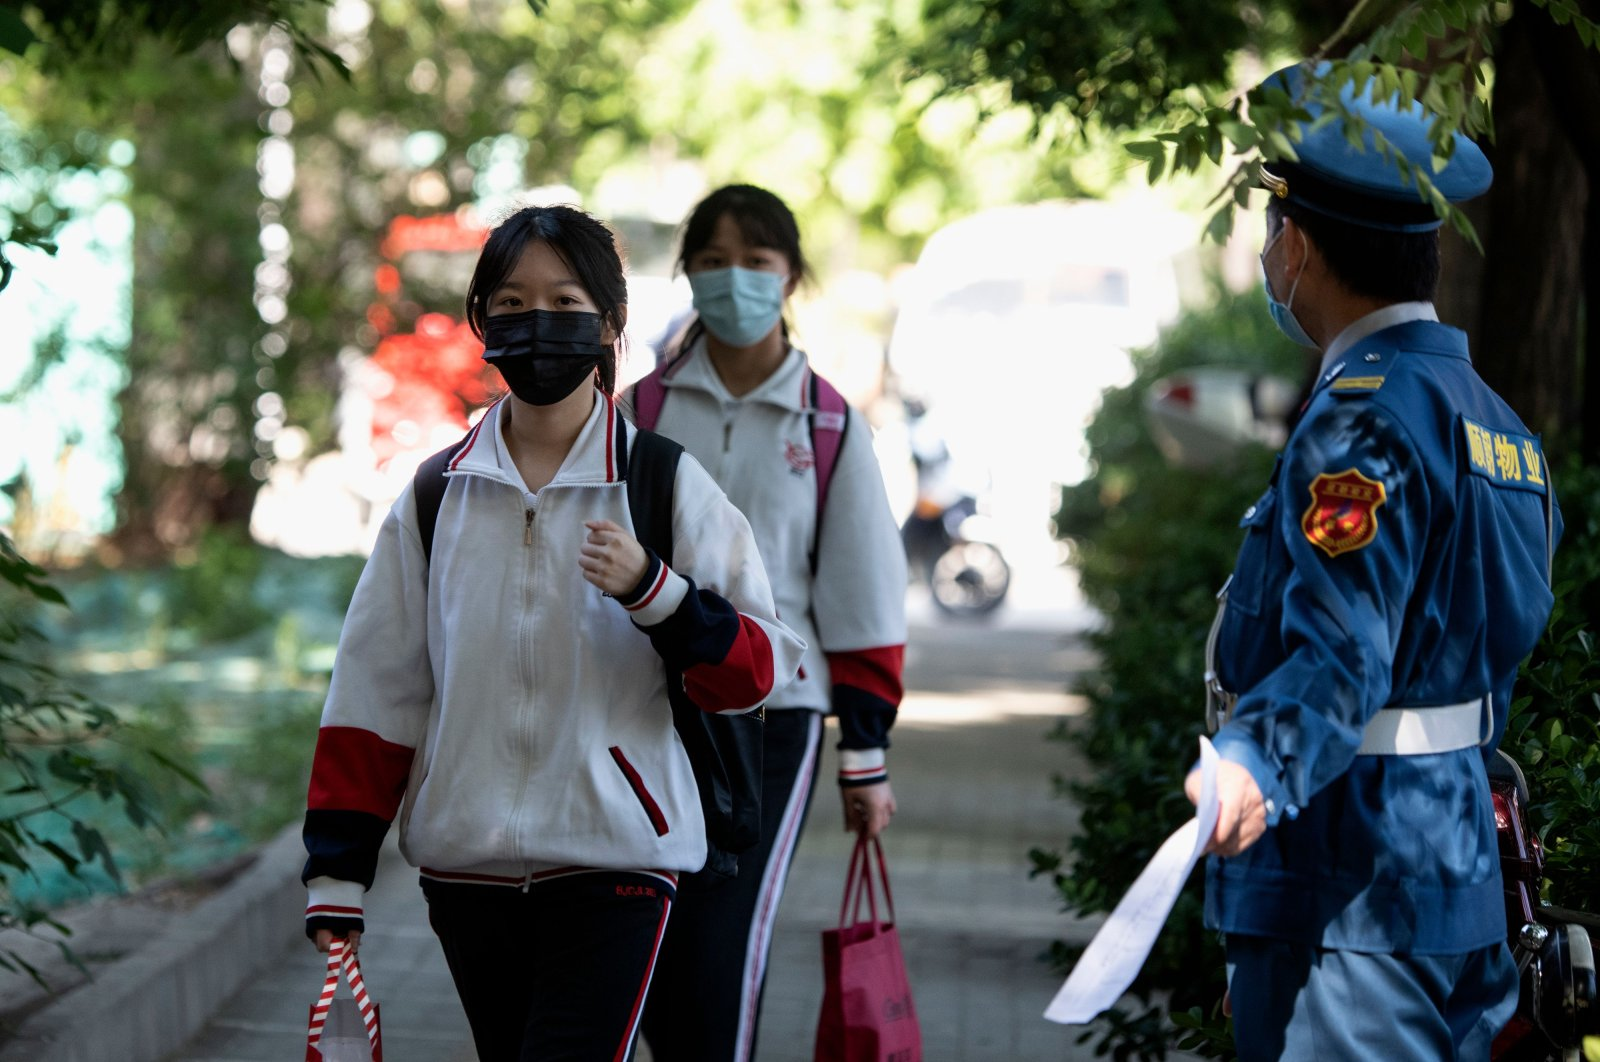 Students wearing face masks over concerns about the coronavirus arrive at a middle school in Beijing, China, May 11, 2020. (AFP Photo)